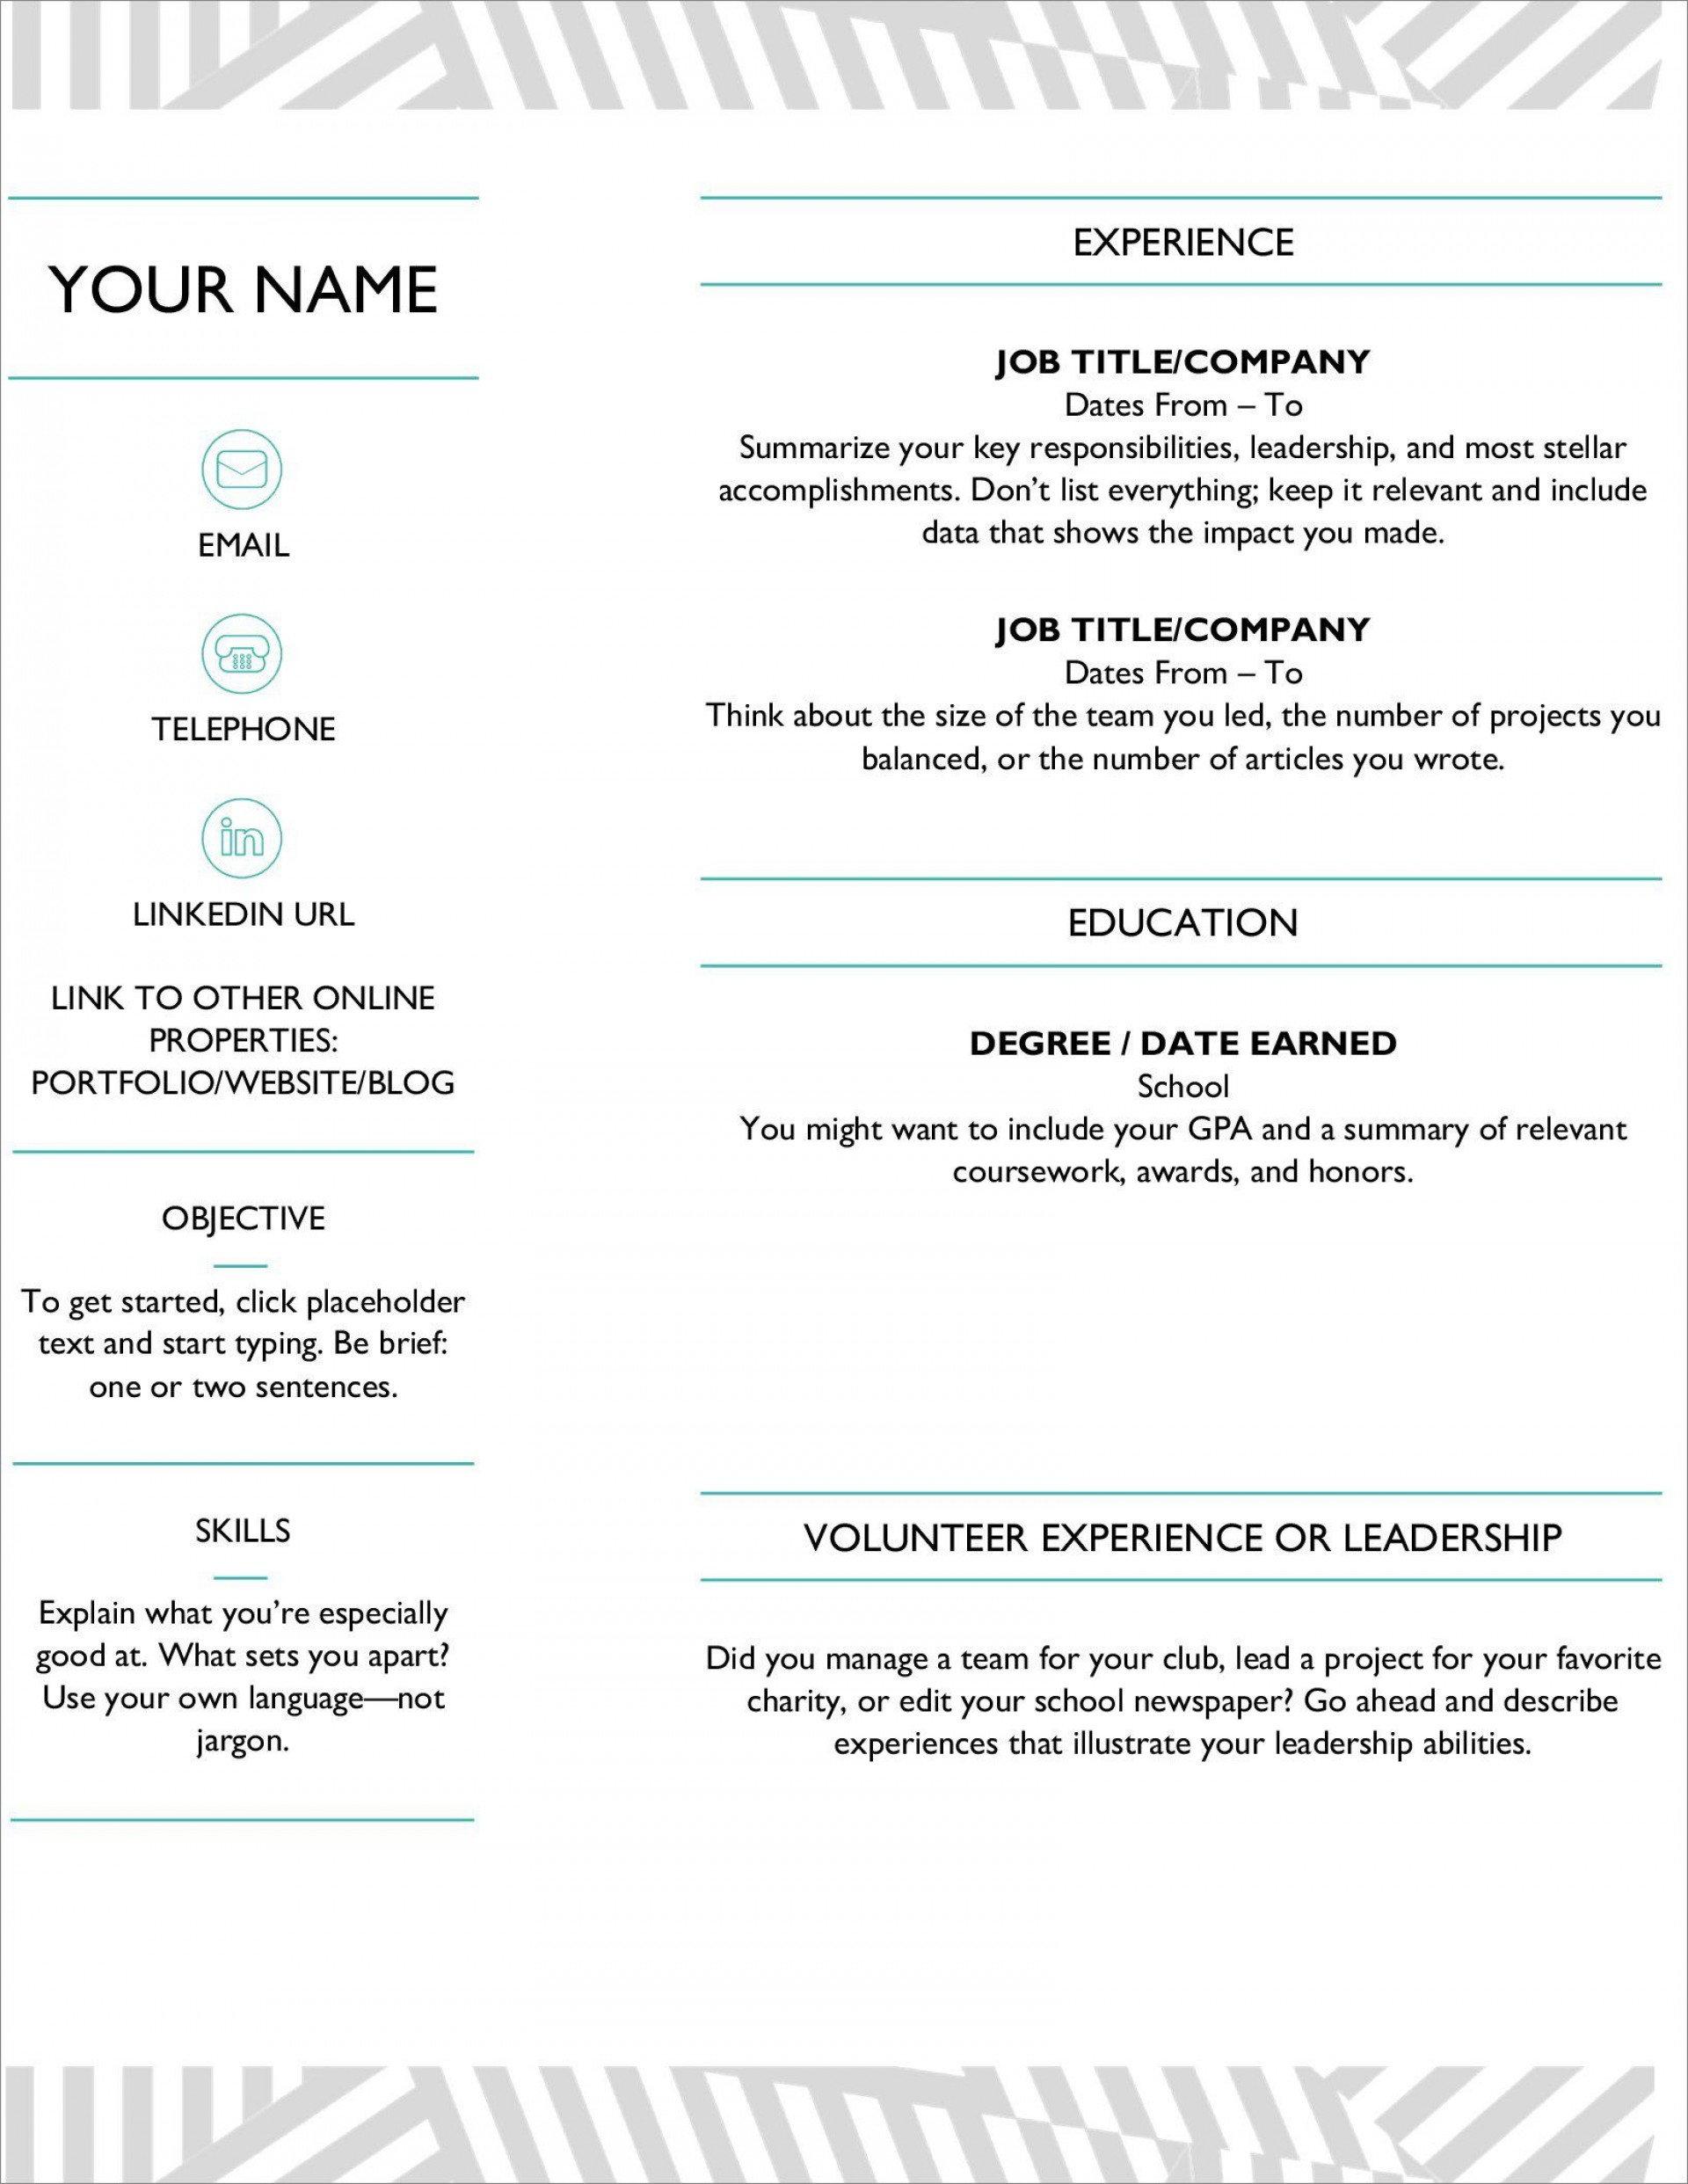 008 Unforgettable Basic Resume Template Word Photo  Free Download 20201920